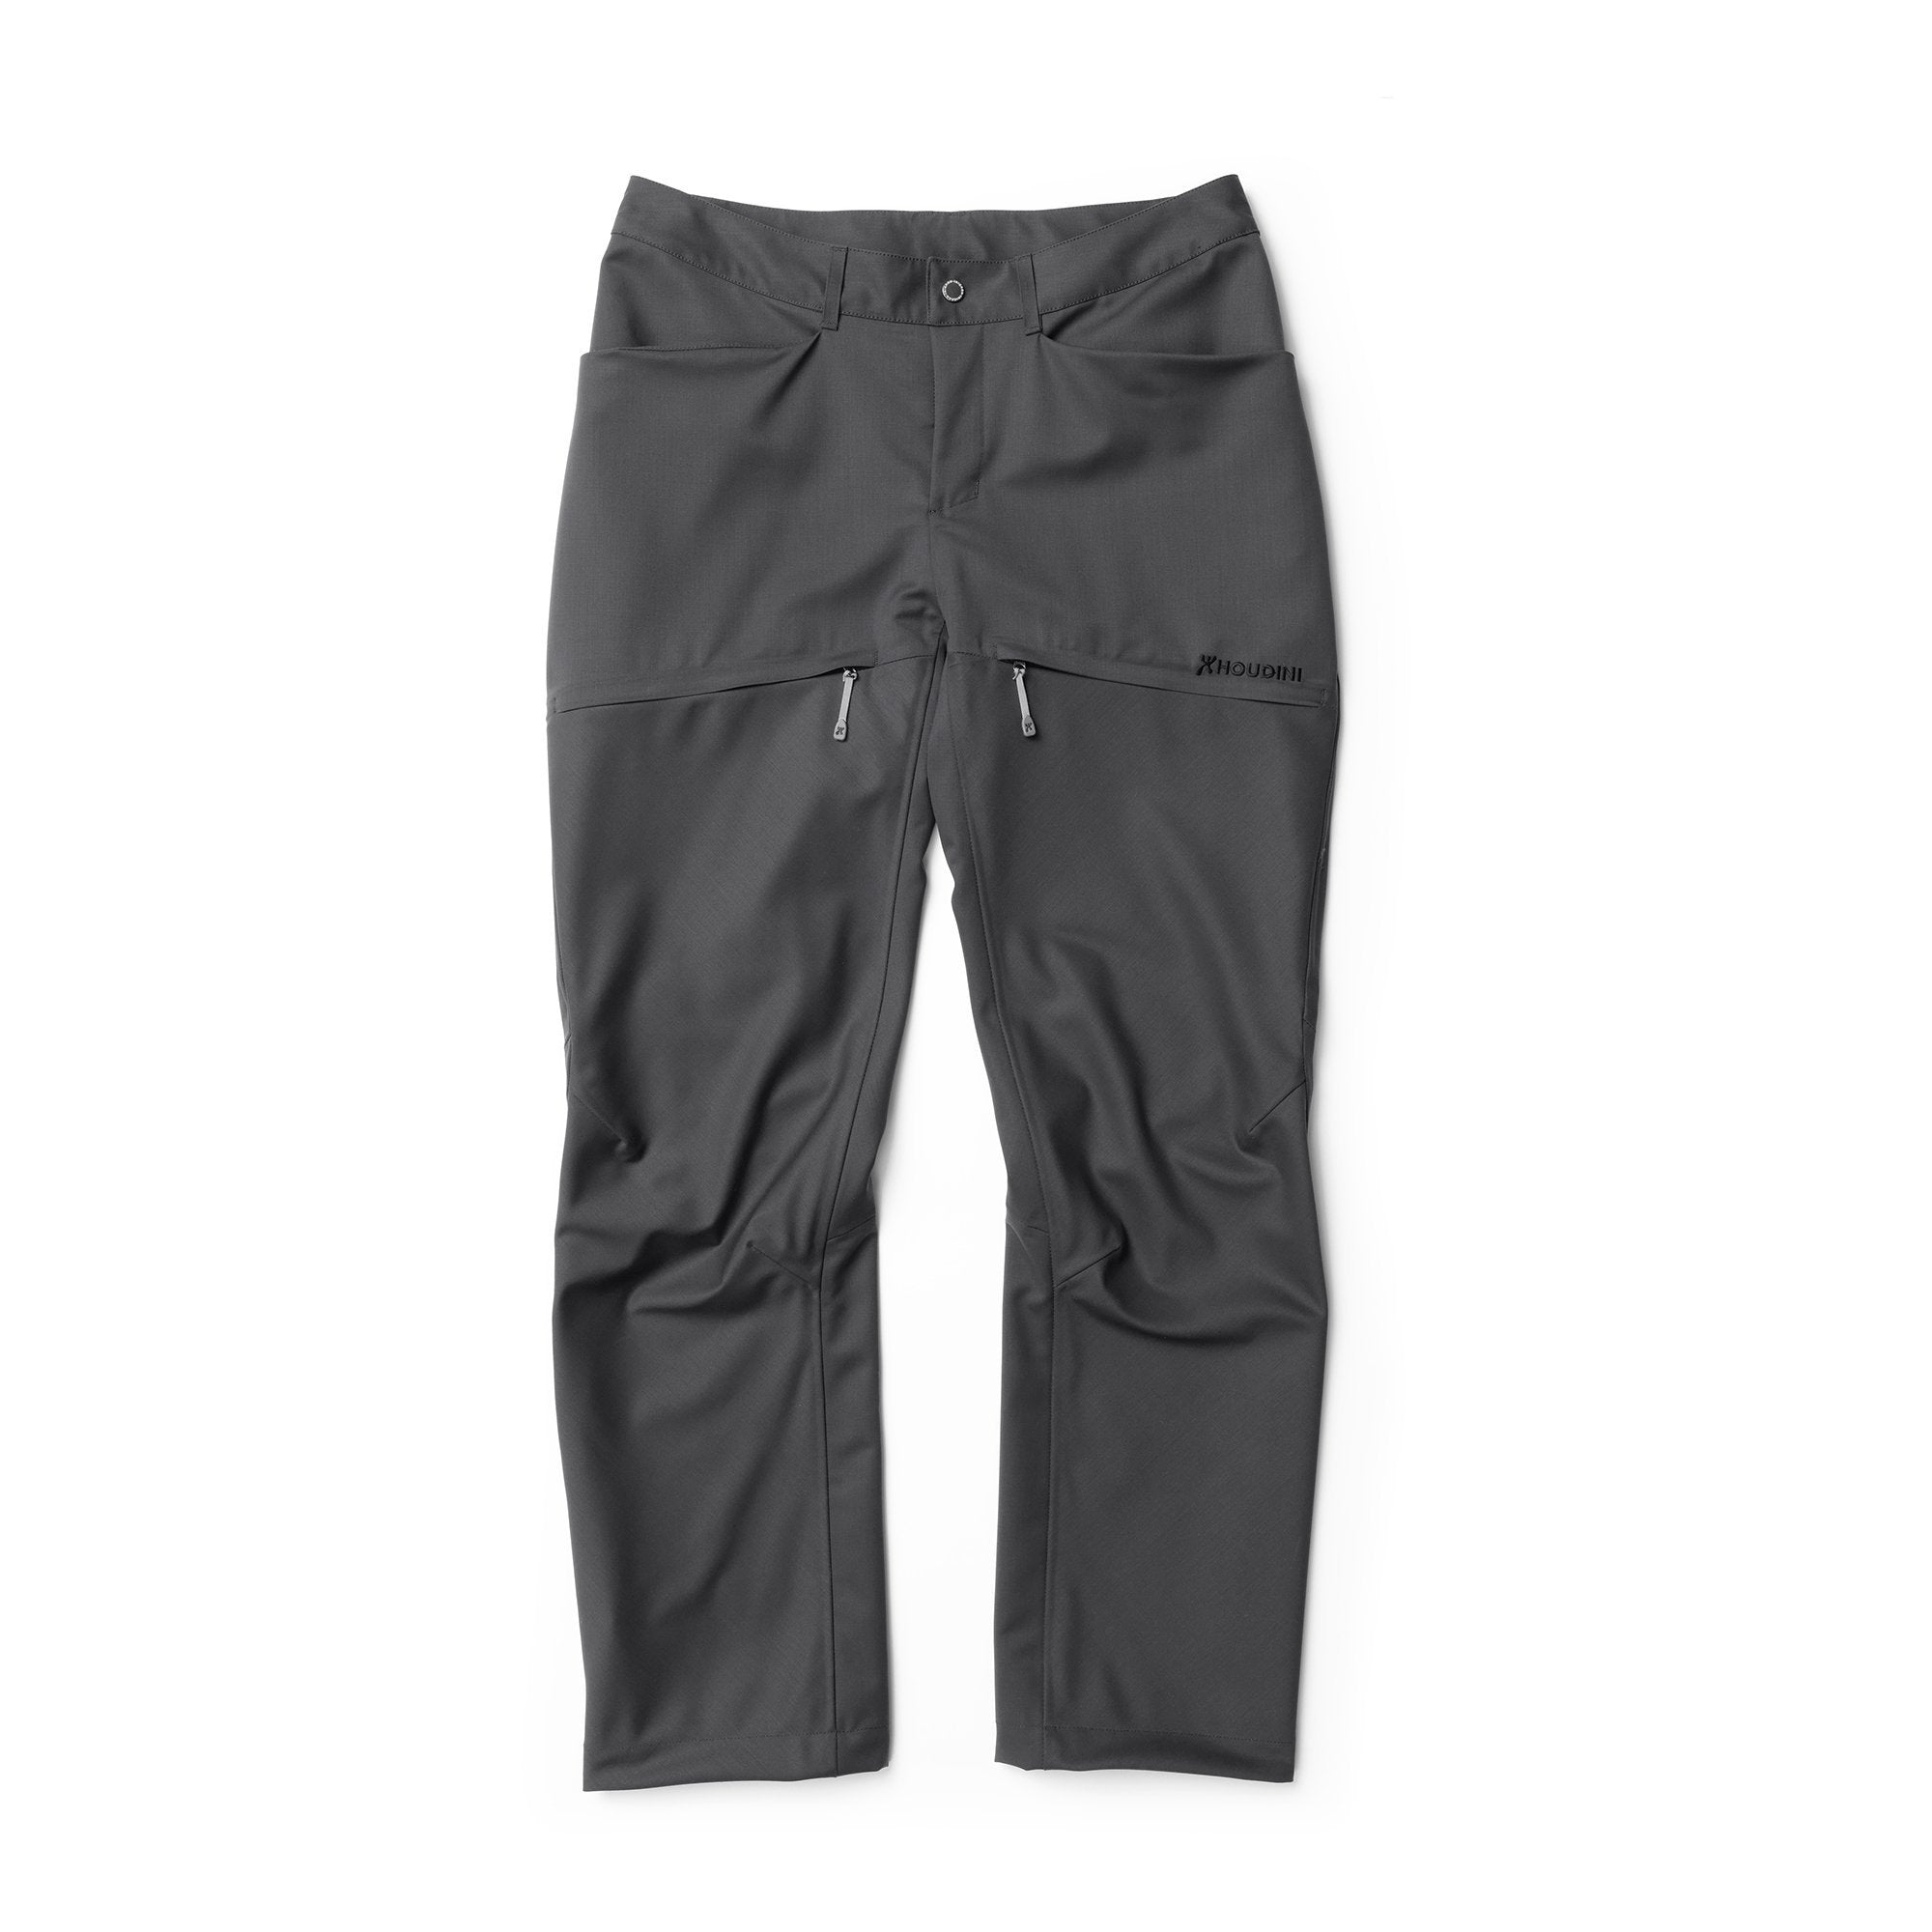 Lana Pants - Scale Grey - Dam - Vindpinad